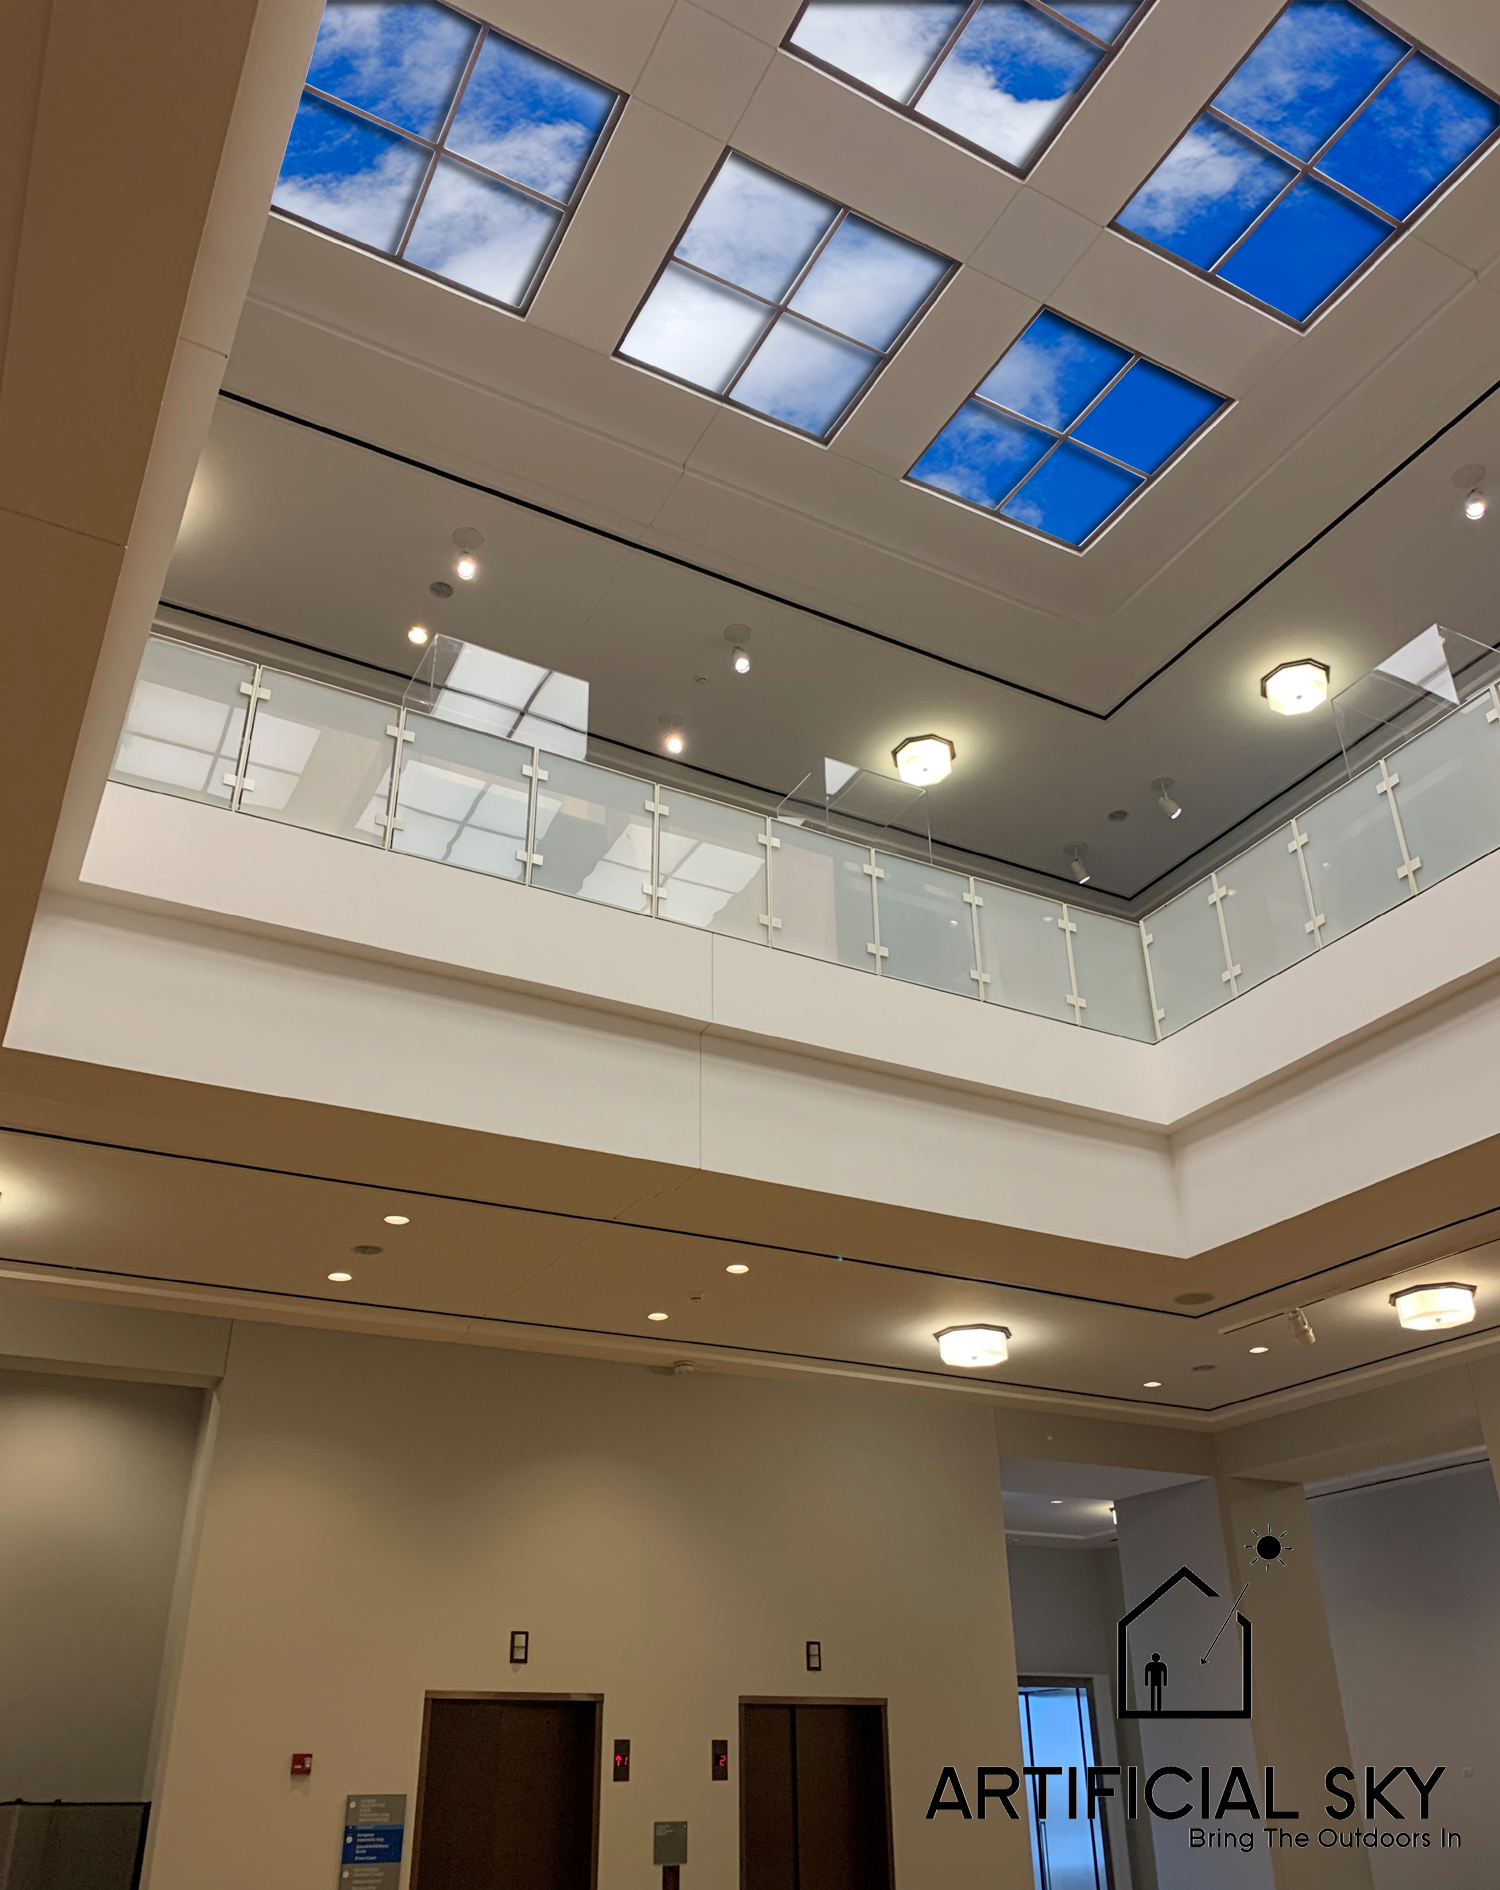 Example of an Artificial Sky Ceiling